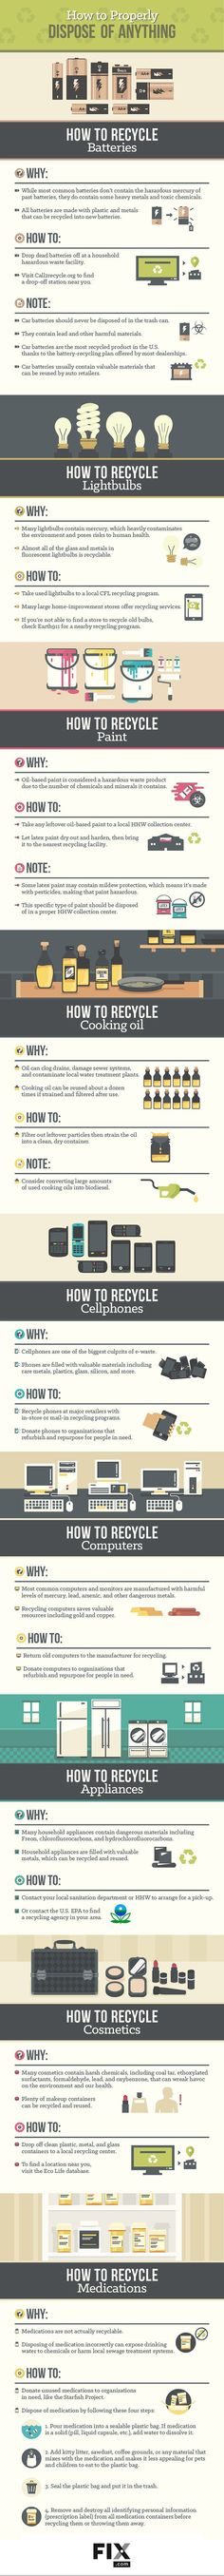 Find out the best way to recycle and dispose of batteries, computers, cosmetics, and more! #Recycle #Green